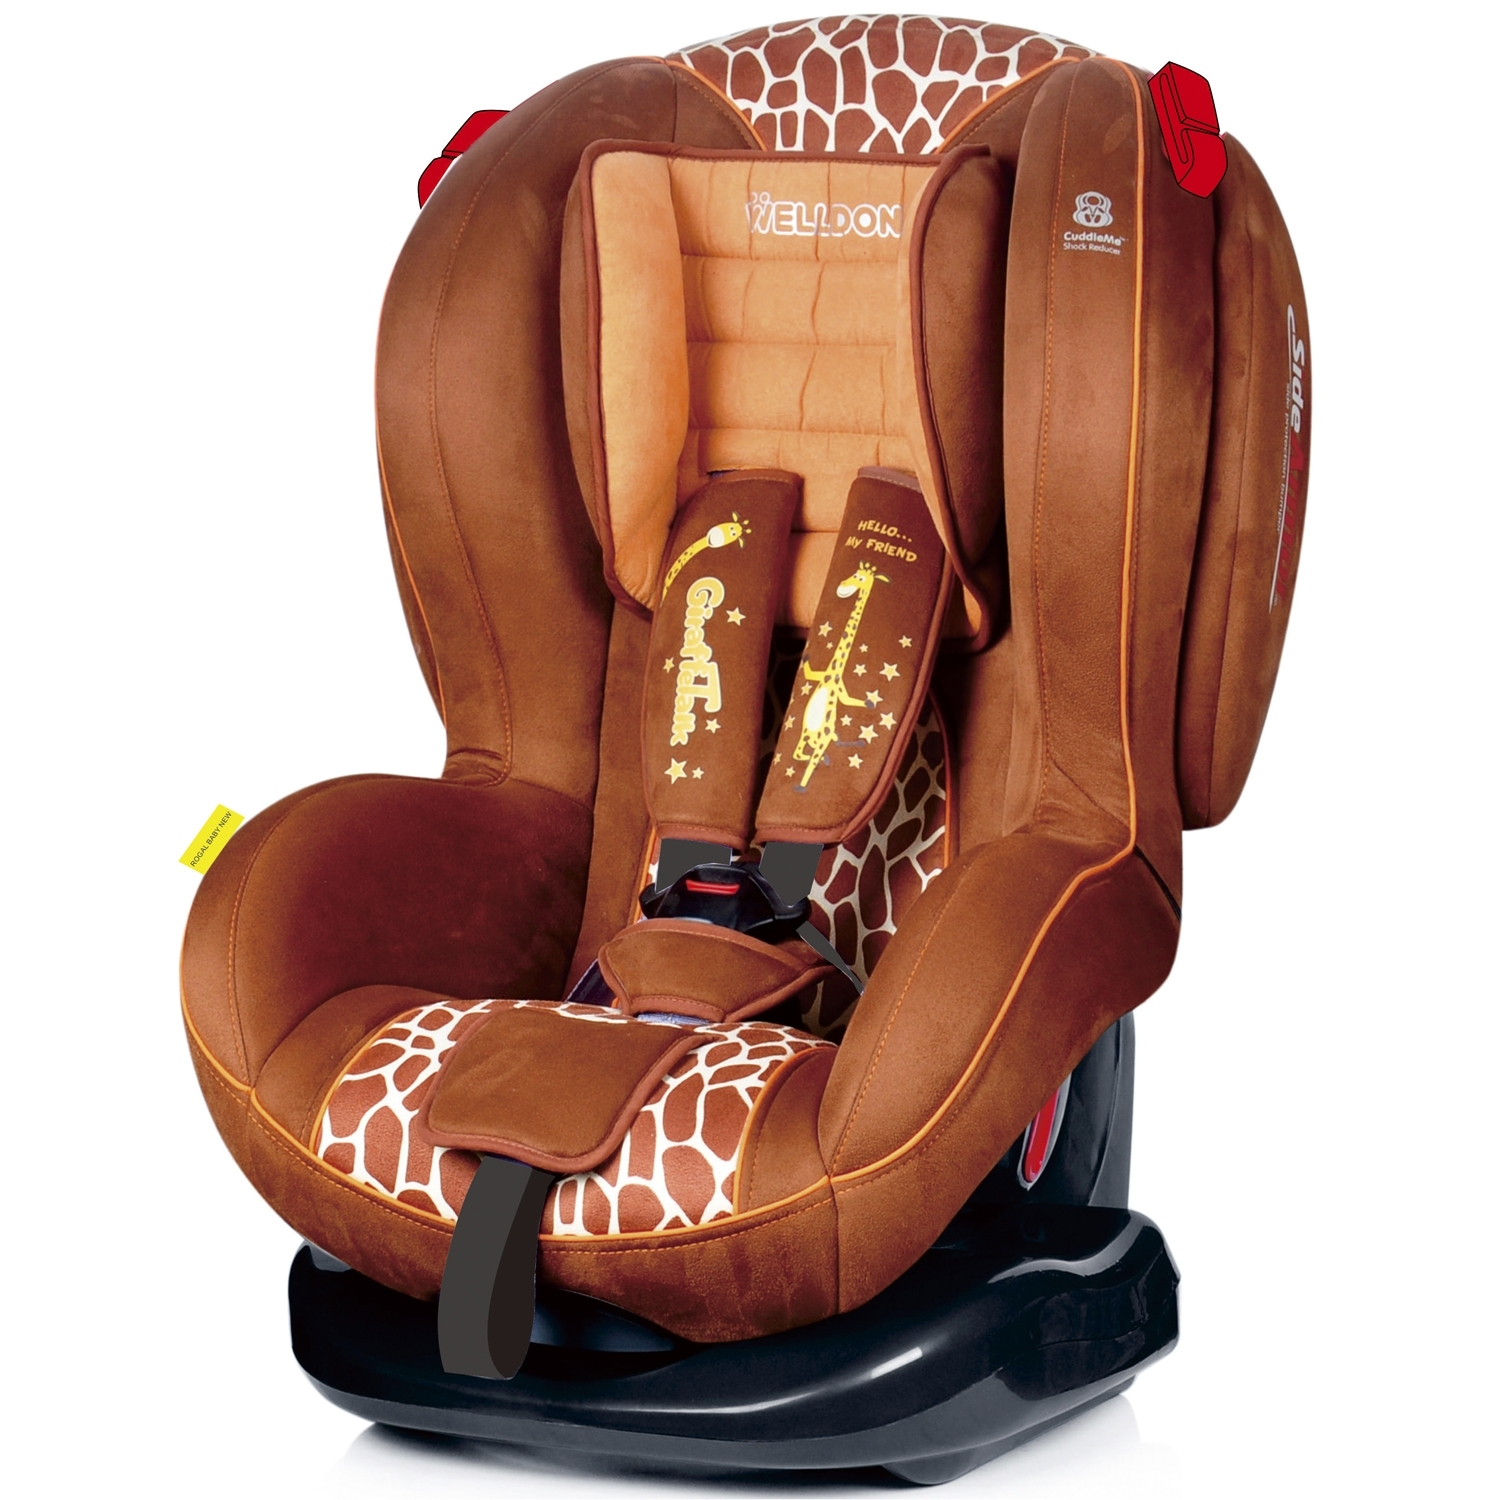 ���������� Welldon New Royal Baby Side Armor & Cuddle BS02N-BCE Giraffe Talk